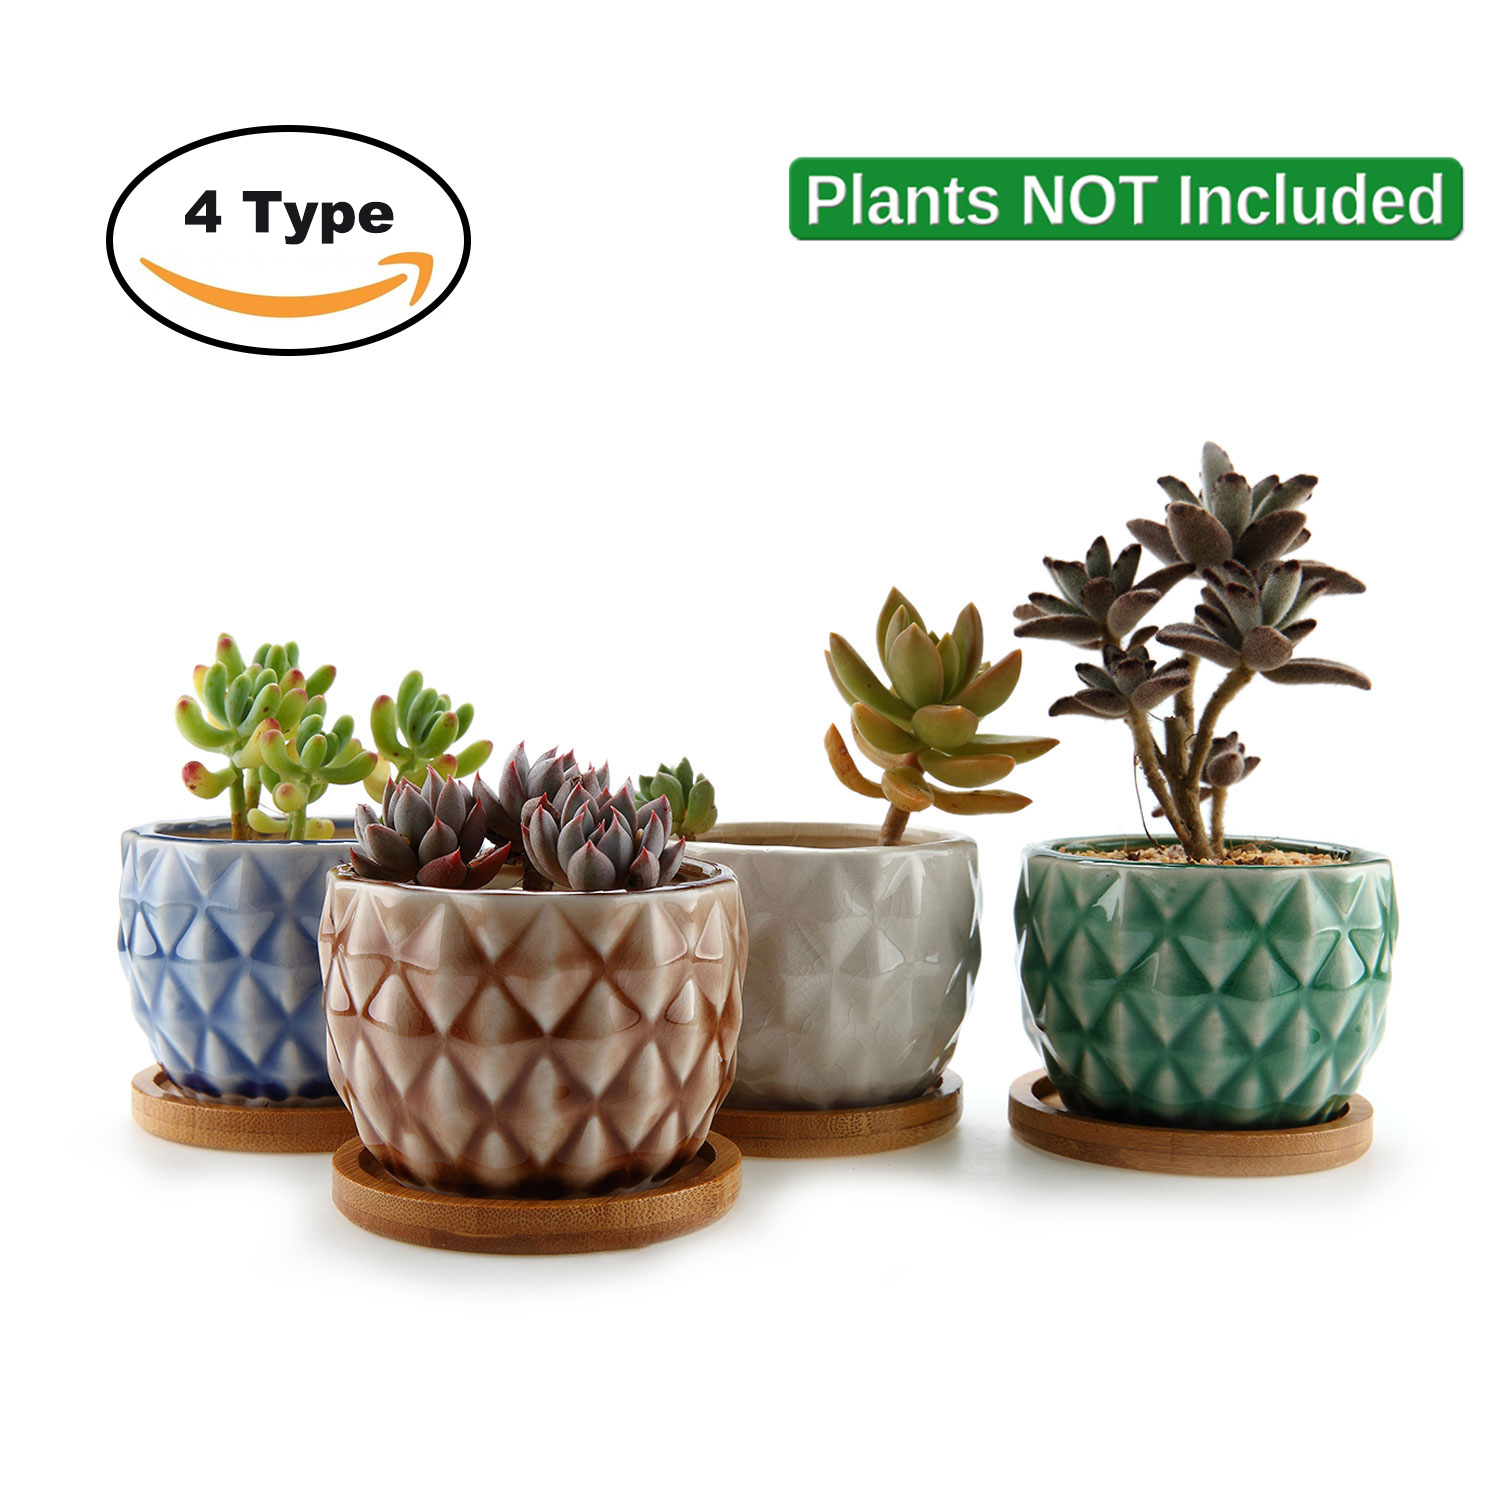 "3.25"" Ceramic Pineapple Flowerpot For Cactus Succulent Planter Planter Pot Flower Pots With Cheap Bamboo Tray Garden Decoration"